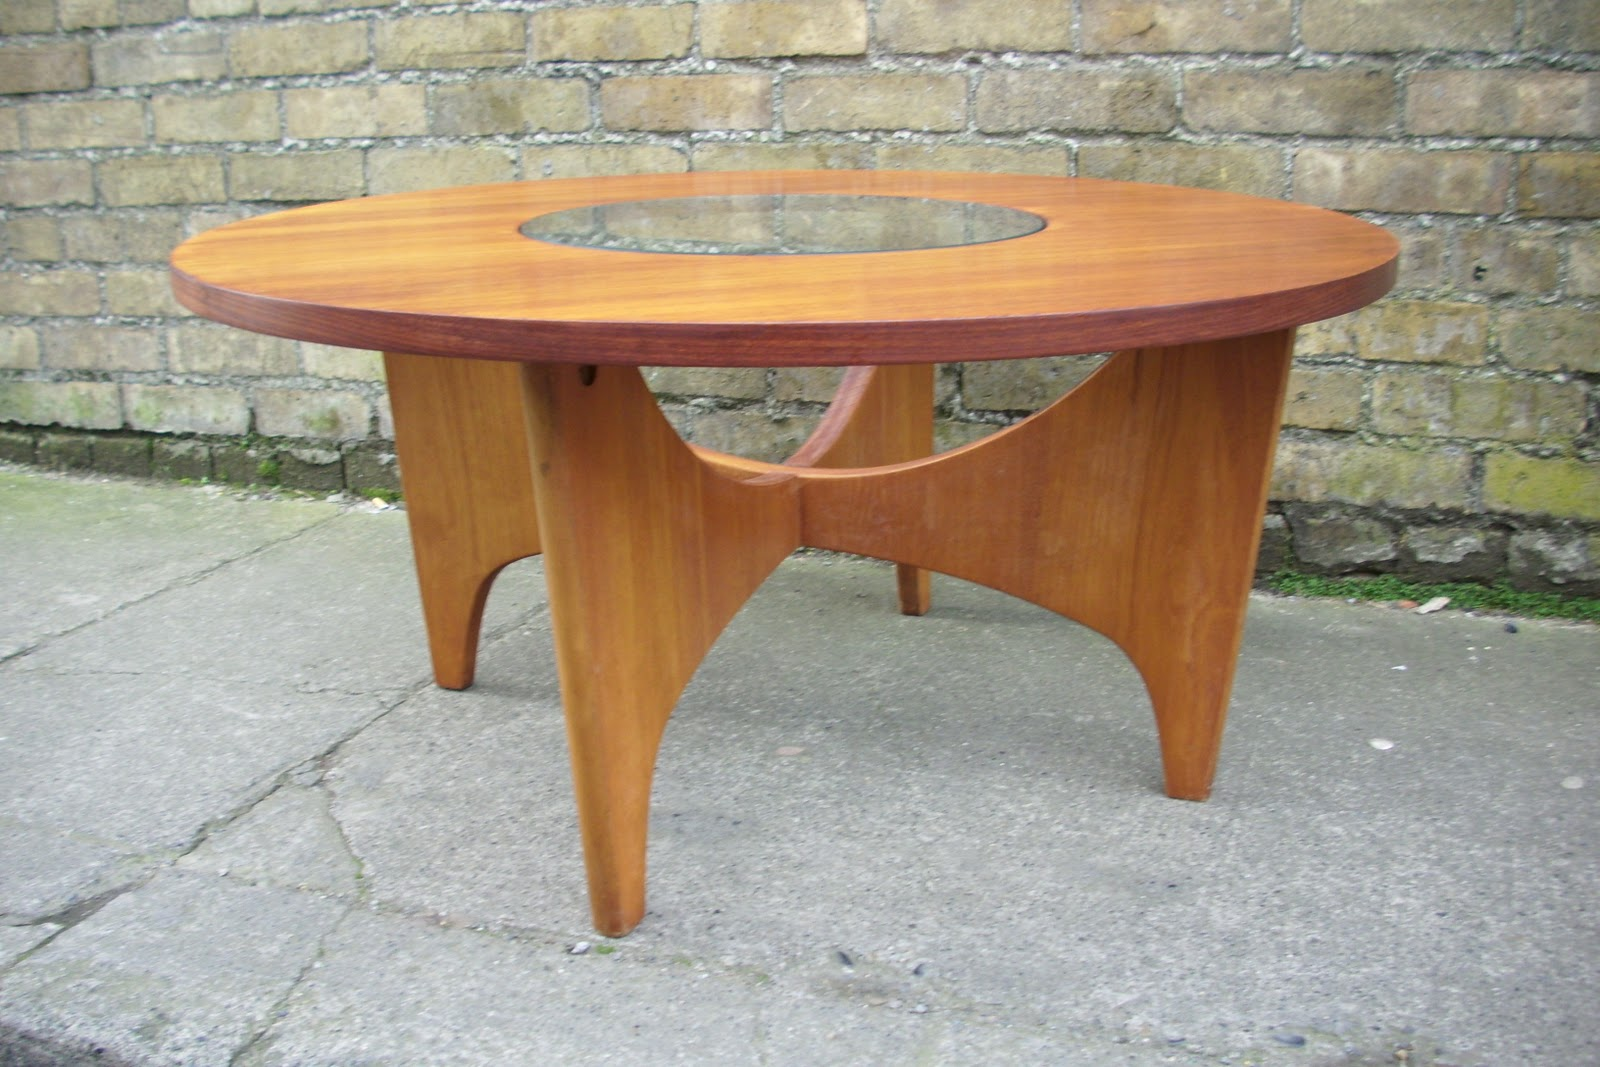 39 astro 39 style 60s coffee table